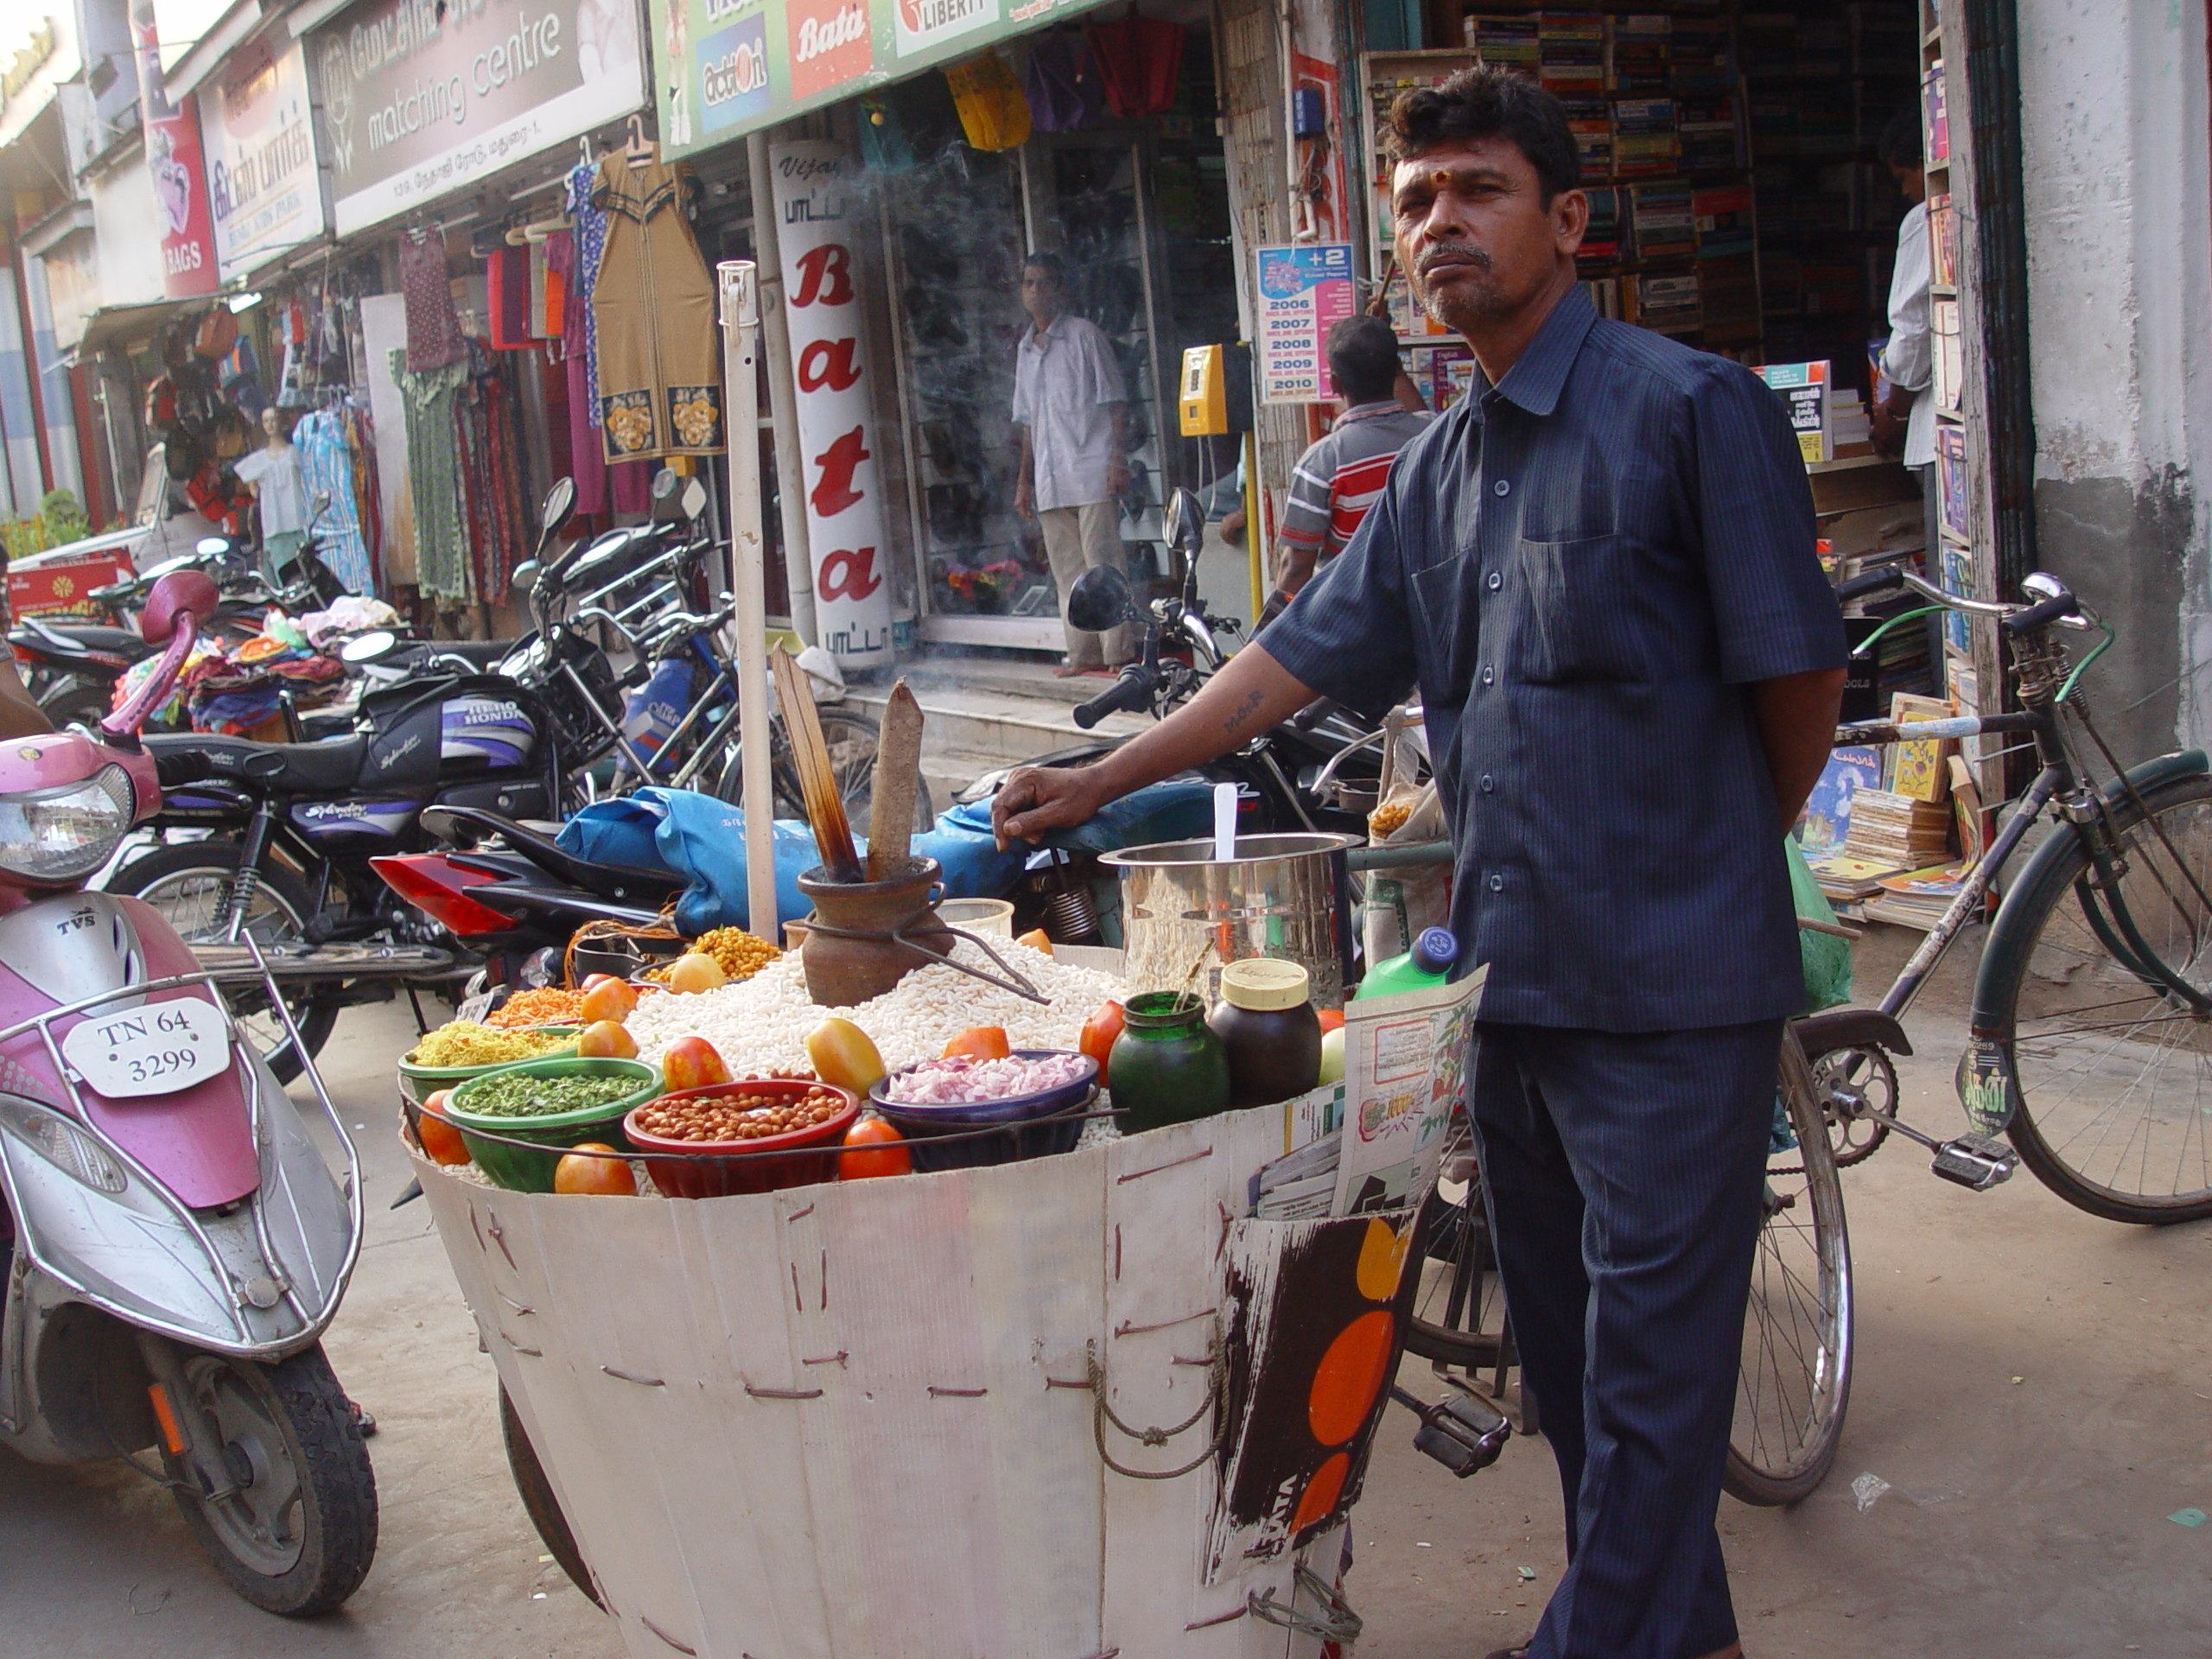 File:Street vendor in Tamil Nadu selling fast foods.JPG ...